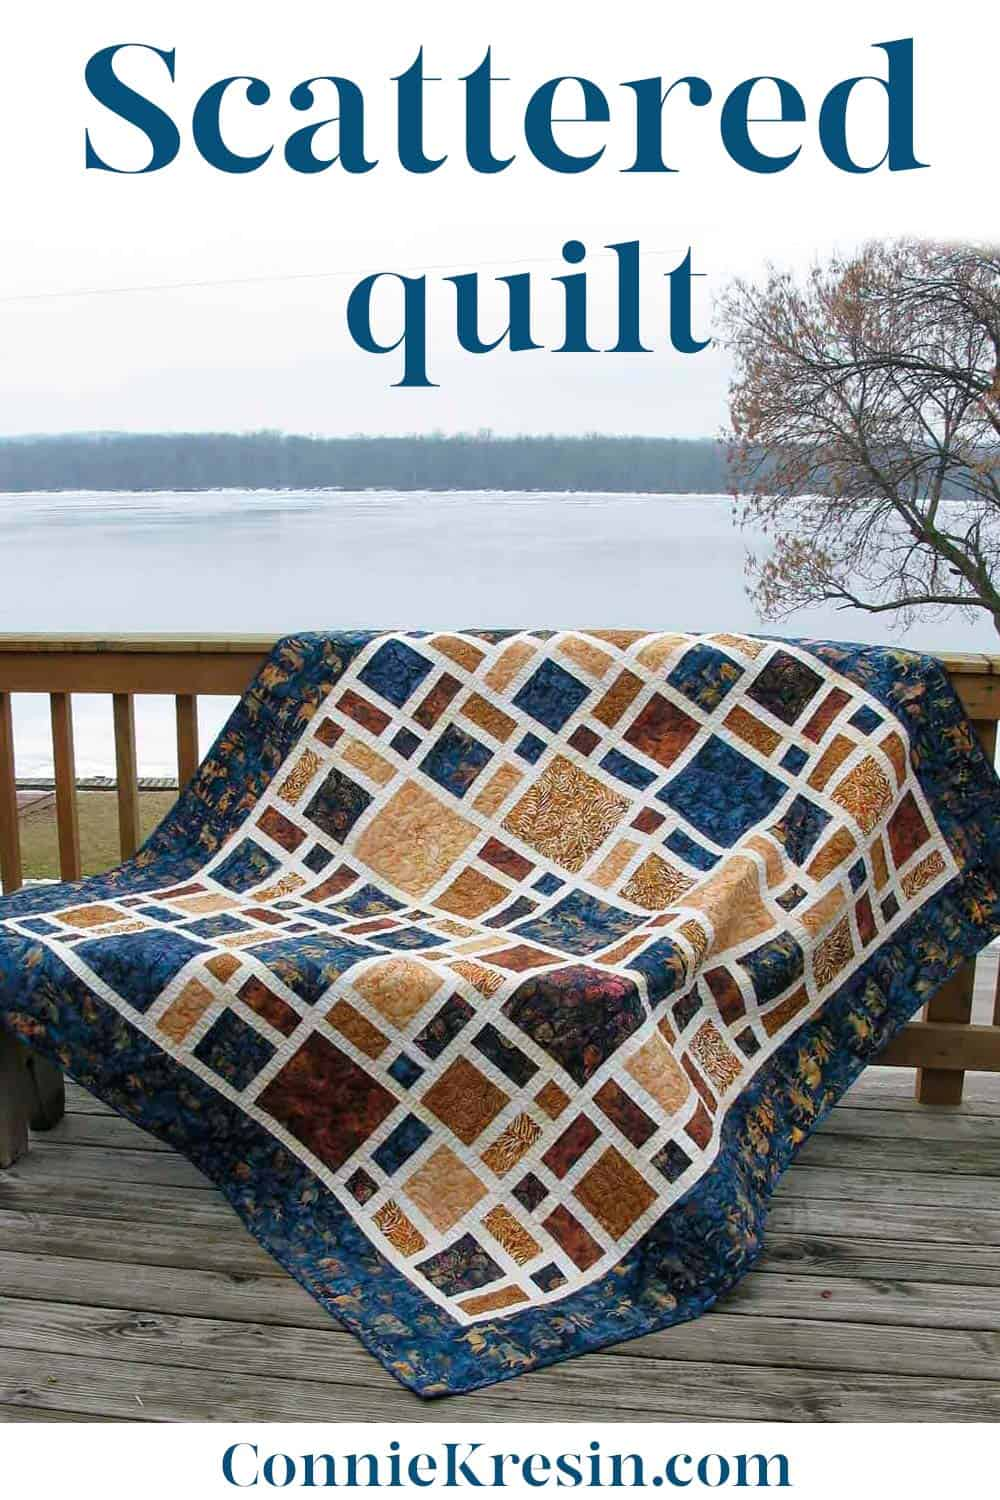 Scattered quilt pattern -fast and easy to make